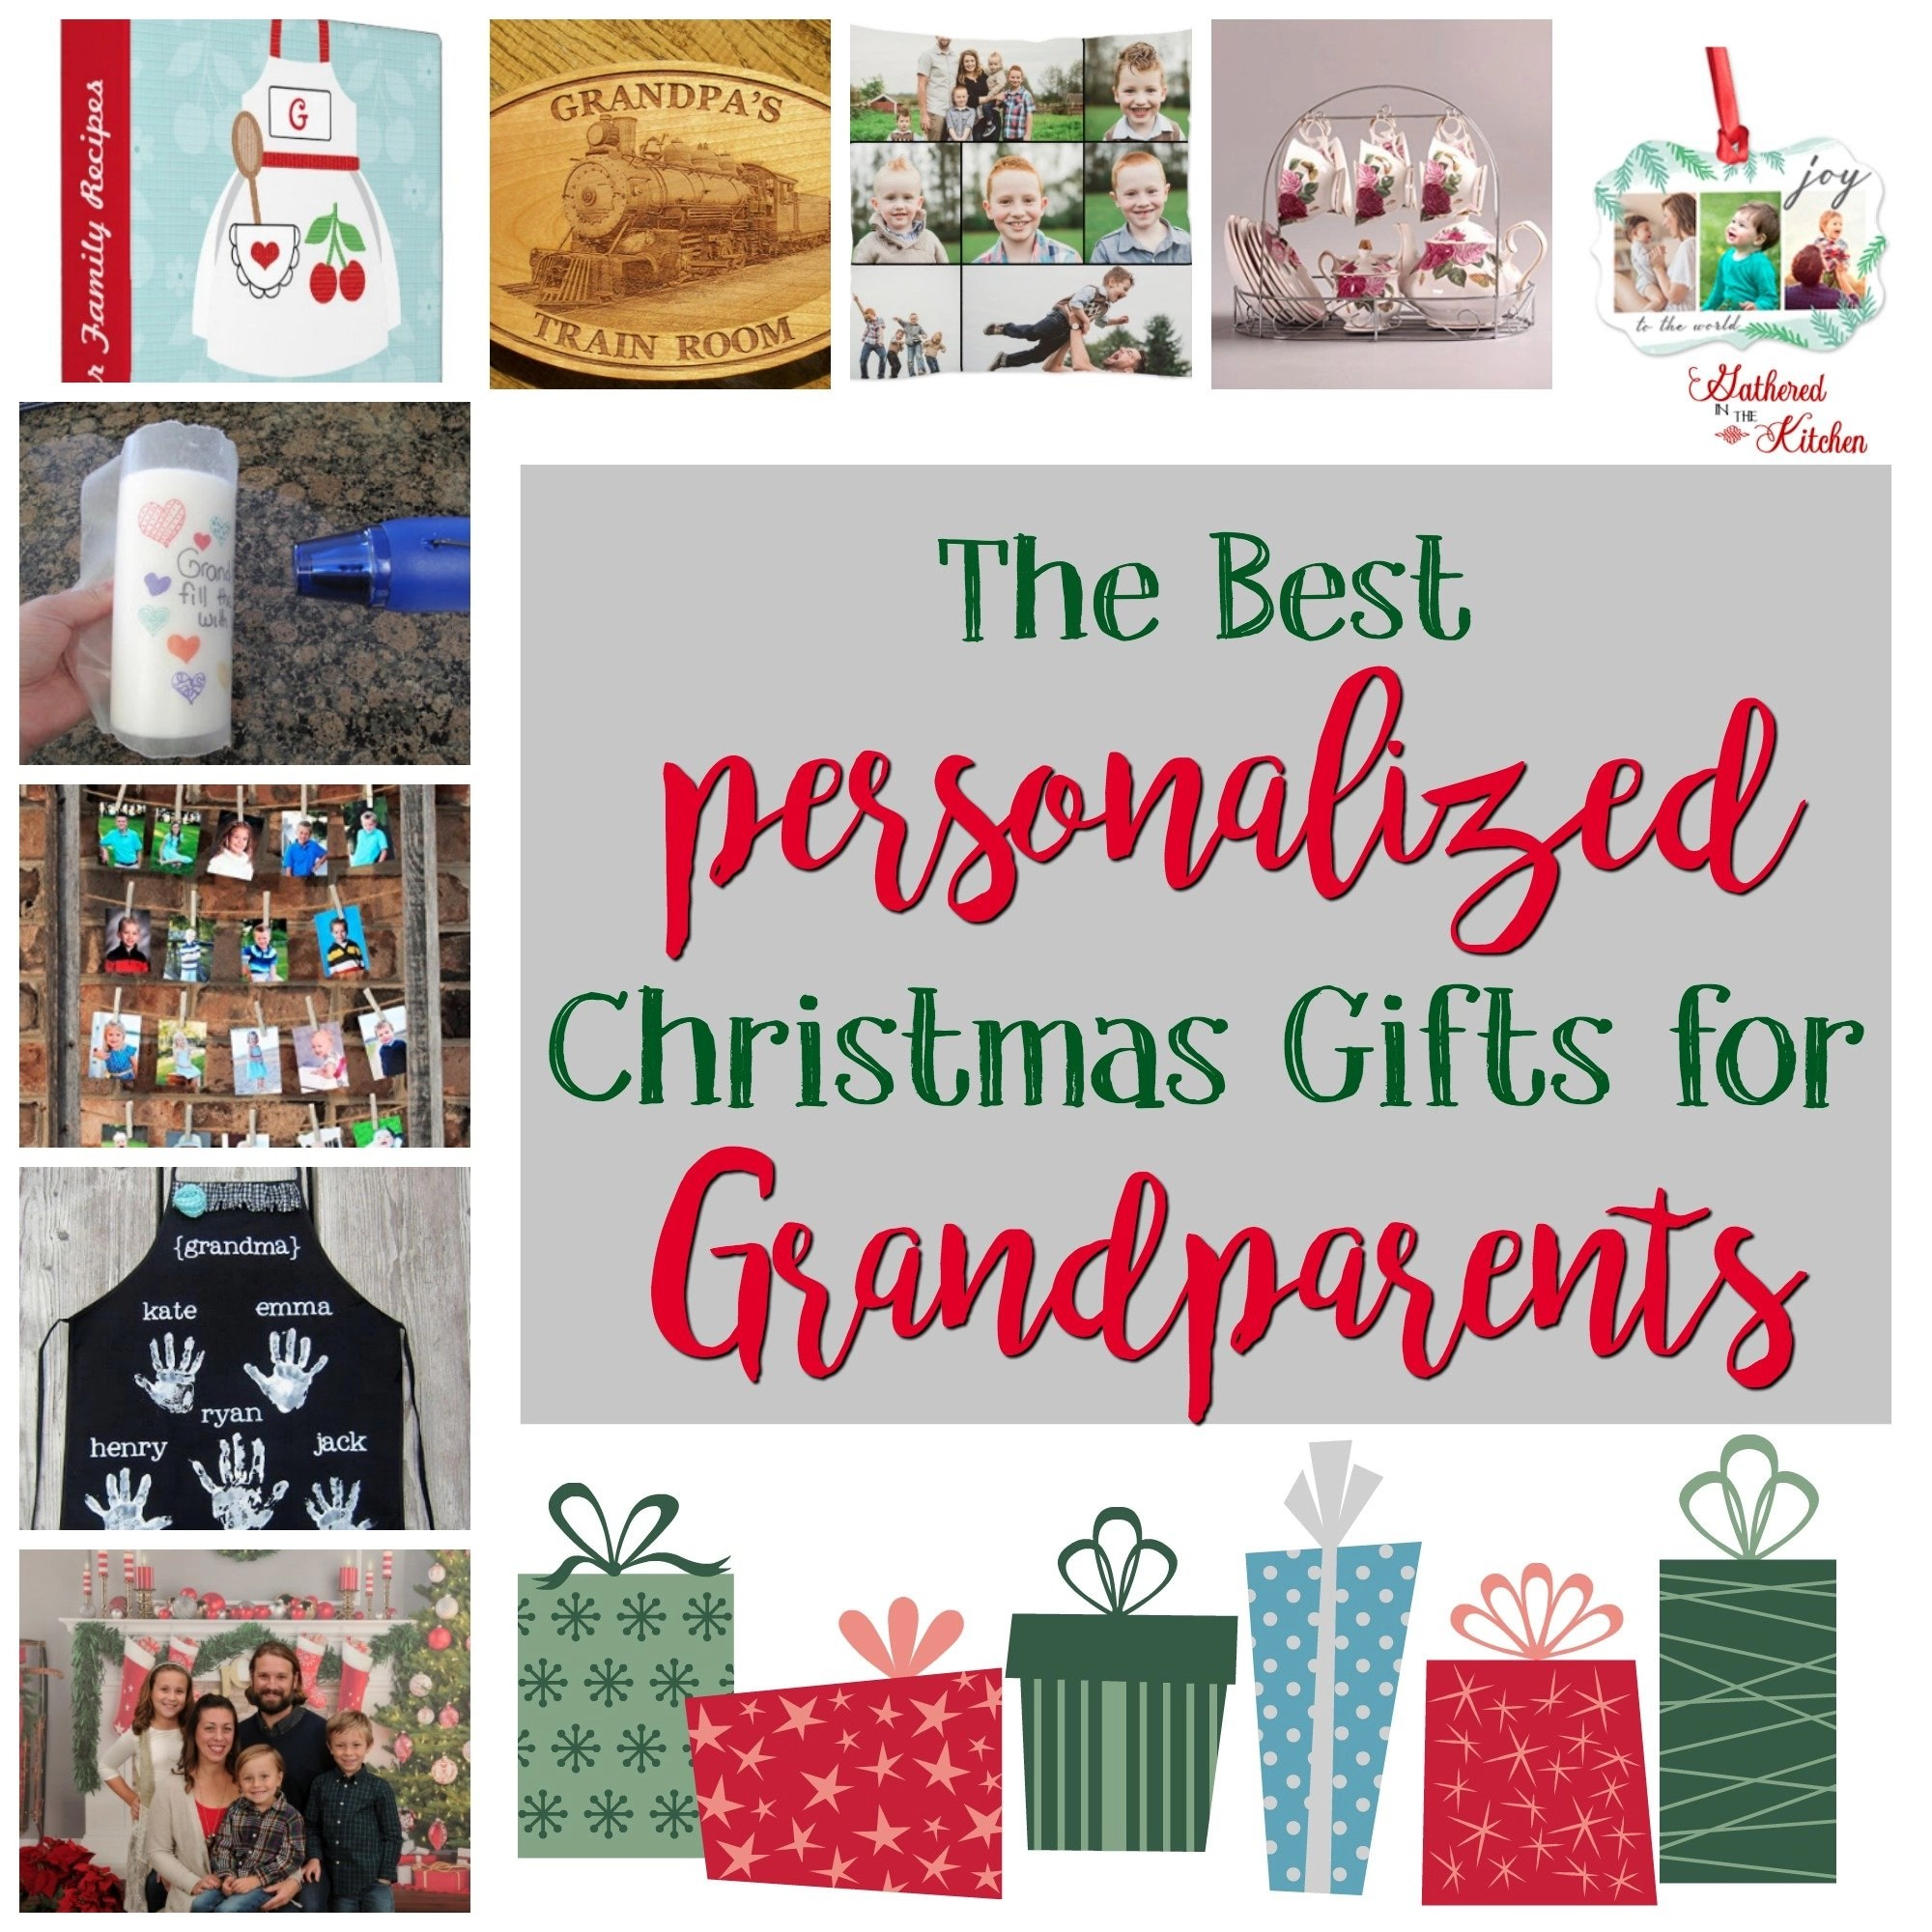 Personalized Holiday Gifts for Grandparents - Gathered In The Kitchen